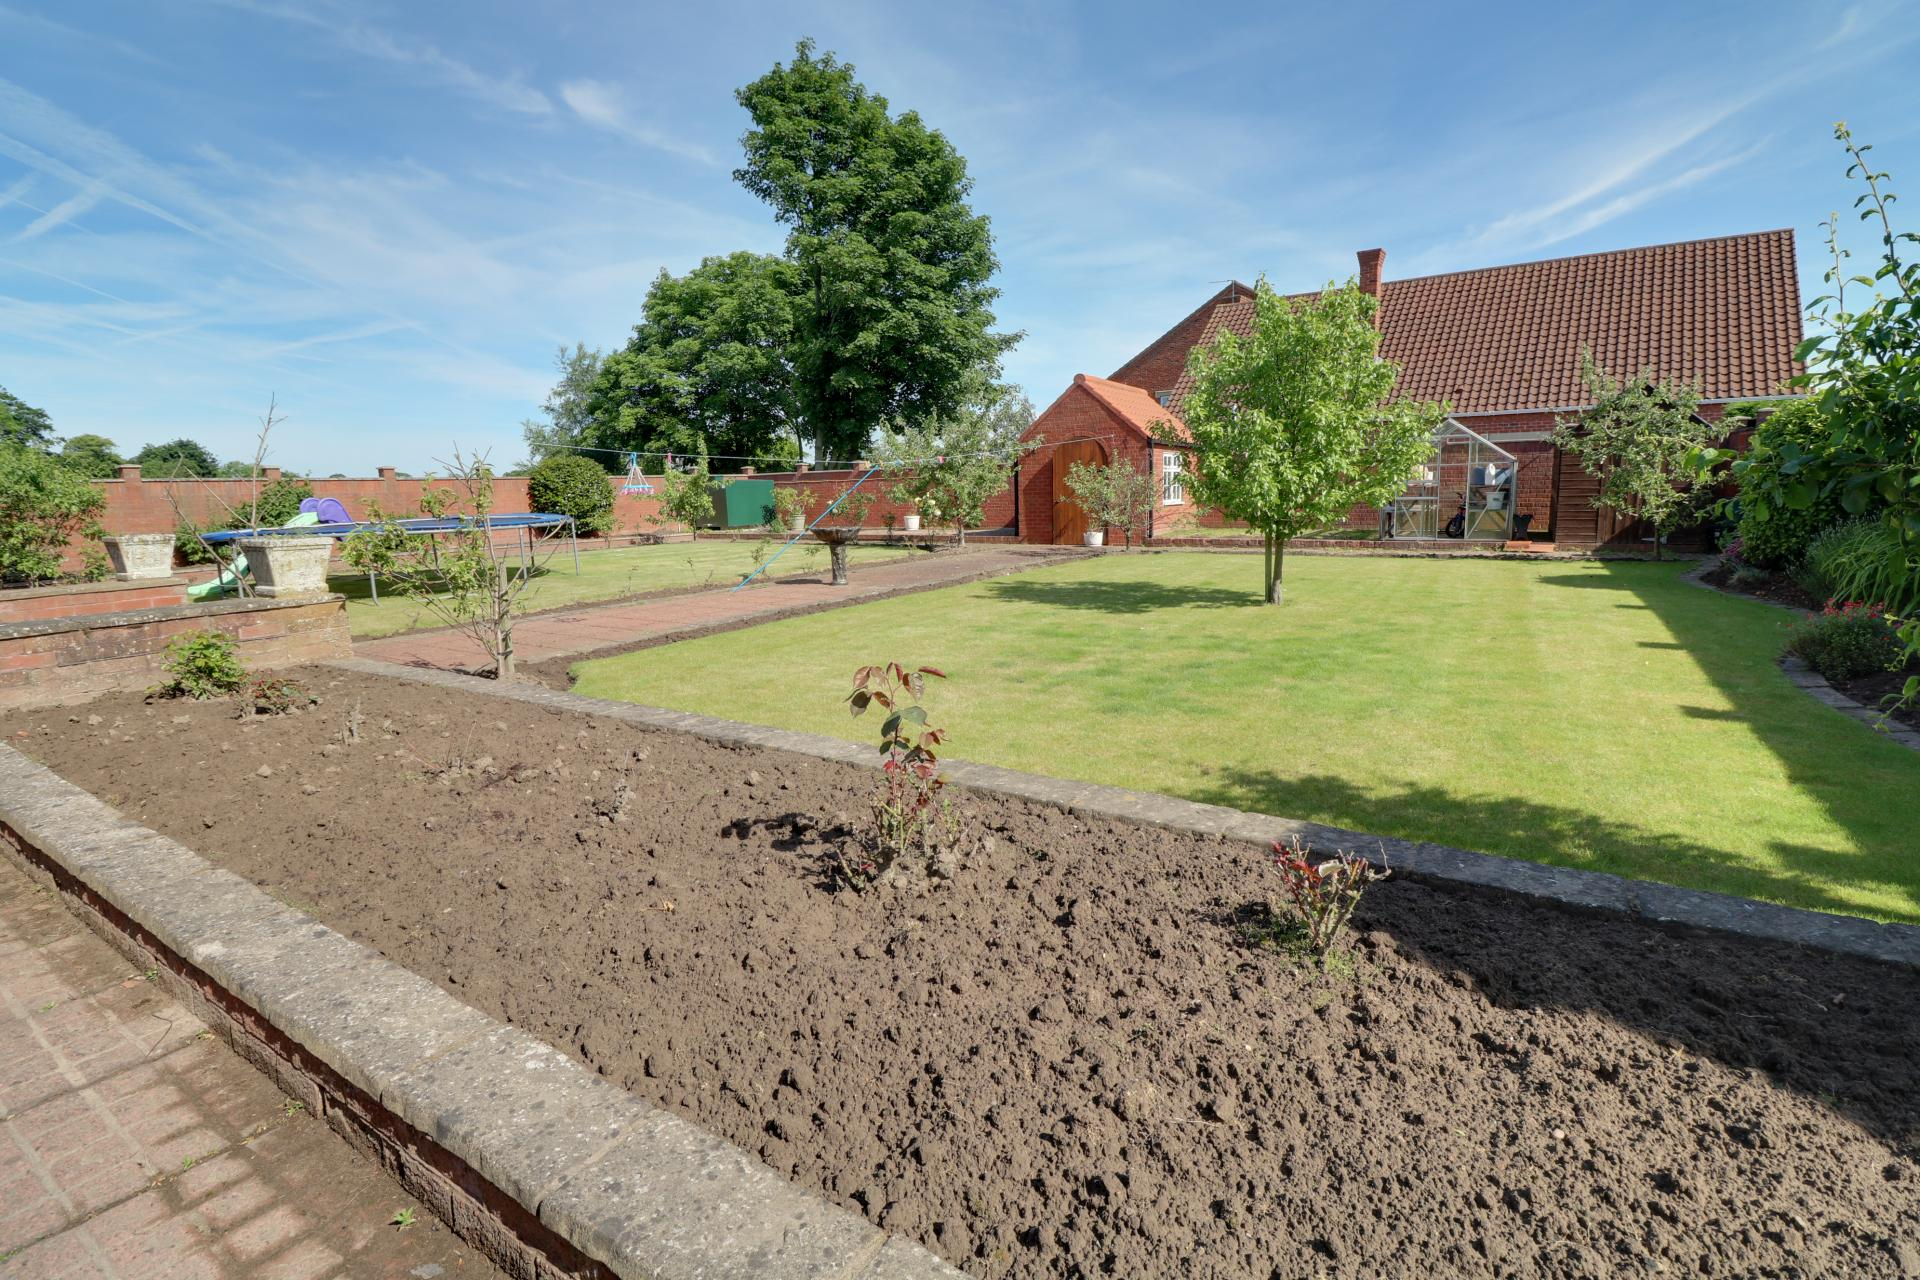 4 Bedroom House For Sale In Doncaster Make Your Own Beautiful  HD Wallpapers, Images Over 1000+ [ralydesign.ml]